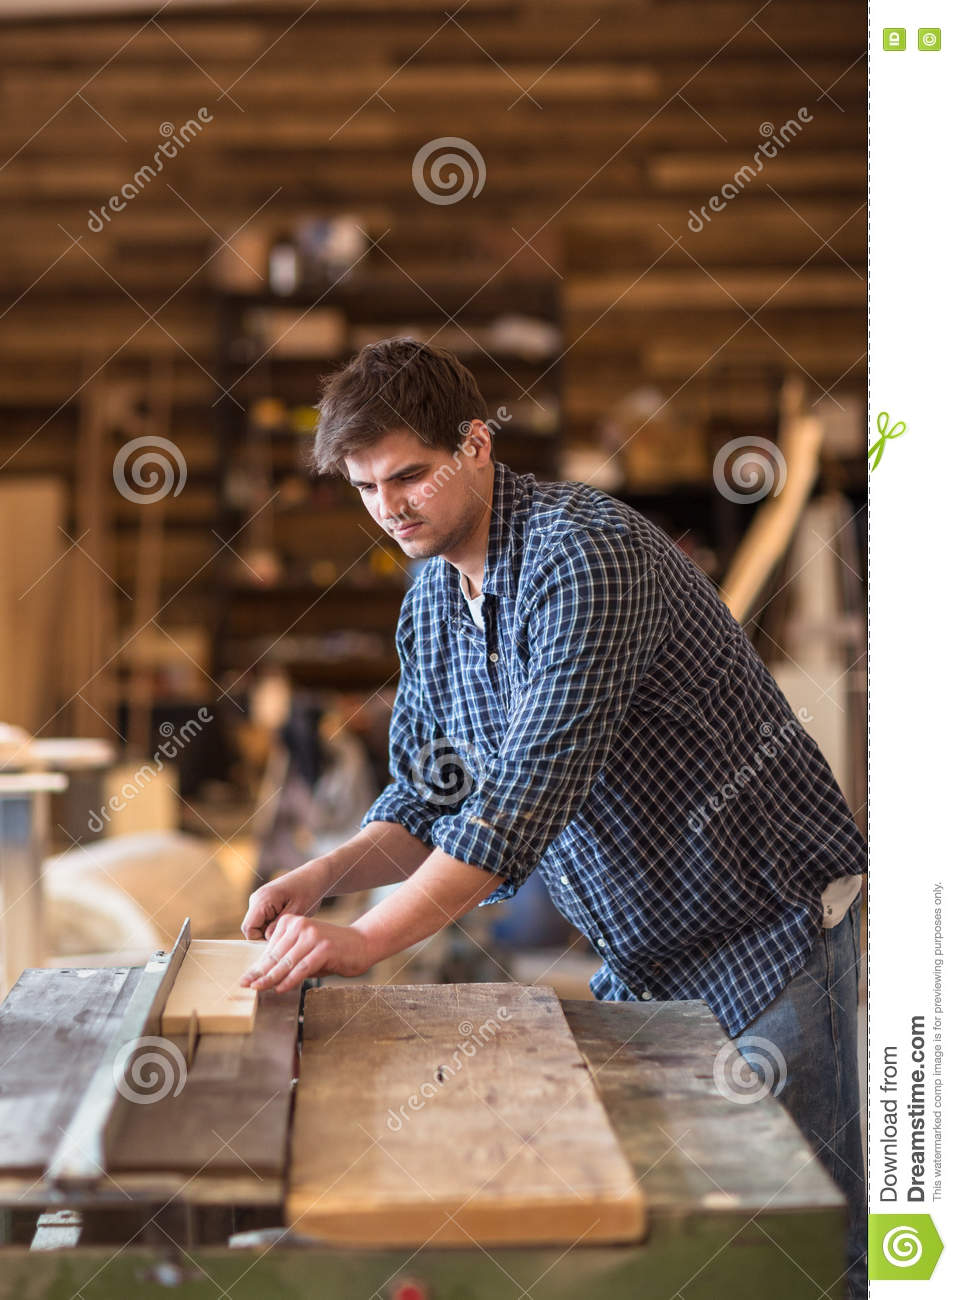 Skilled carpenter working in his woodwork workshop, using a circular saw